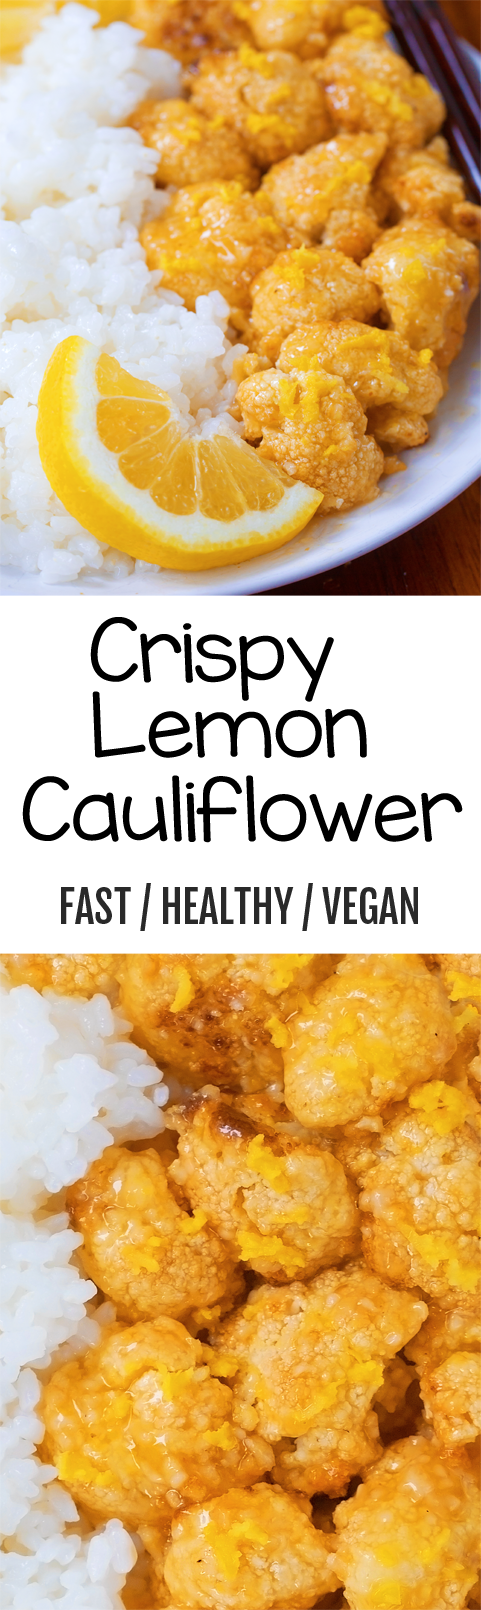 CRISPY Lemon Cauliflower, this was SO good!